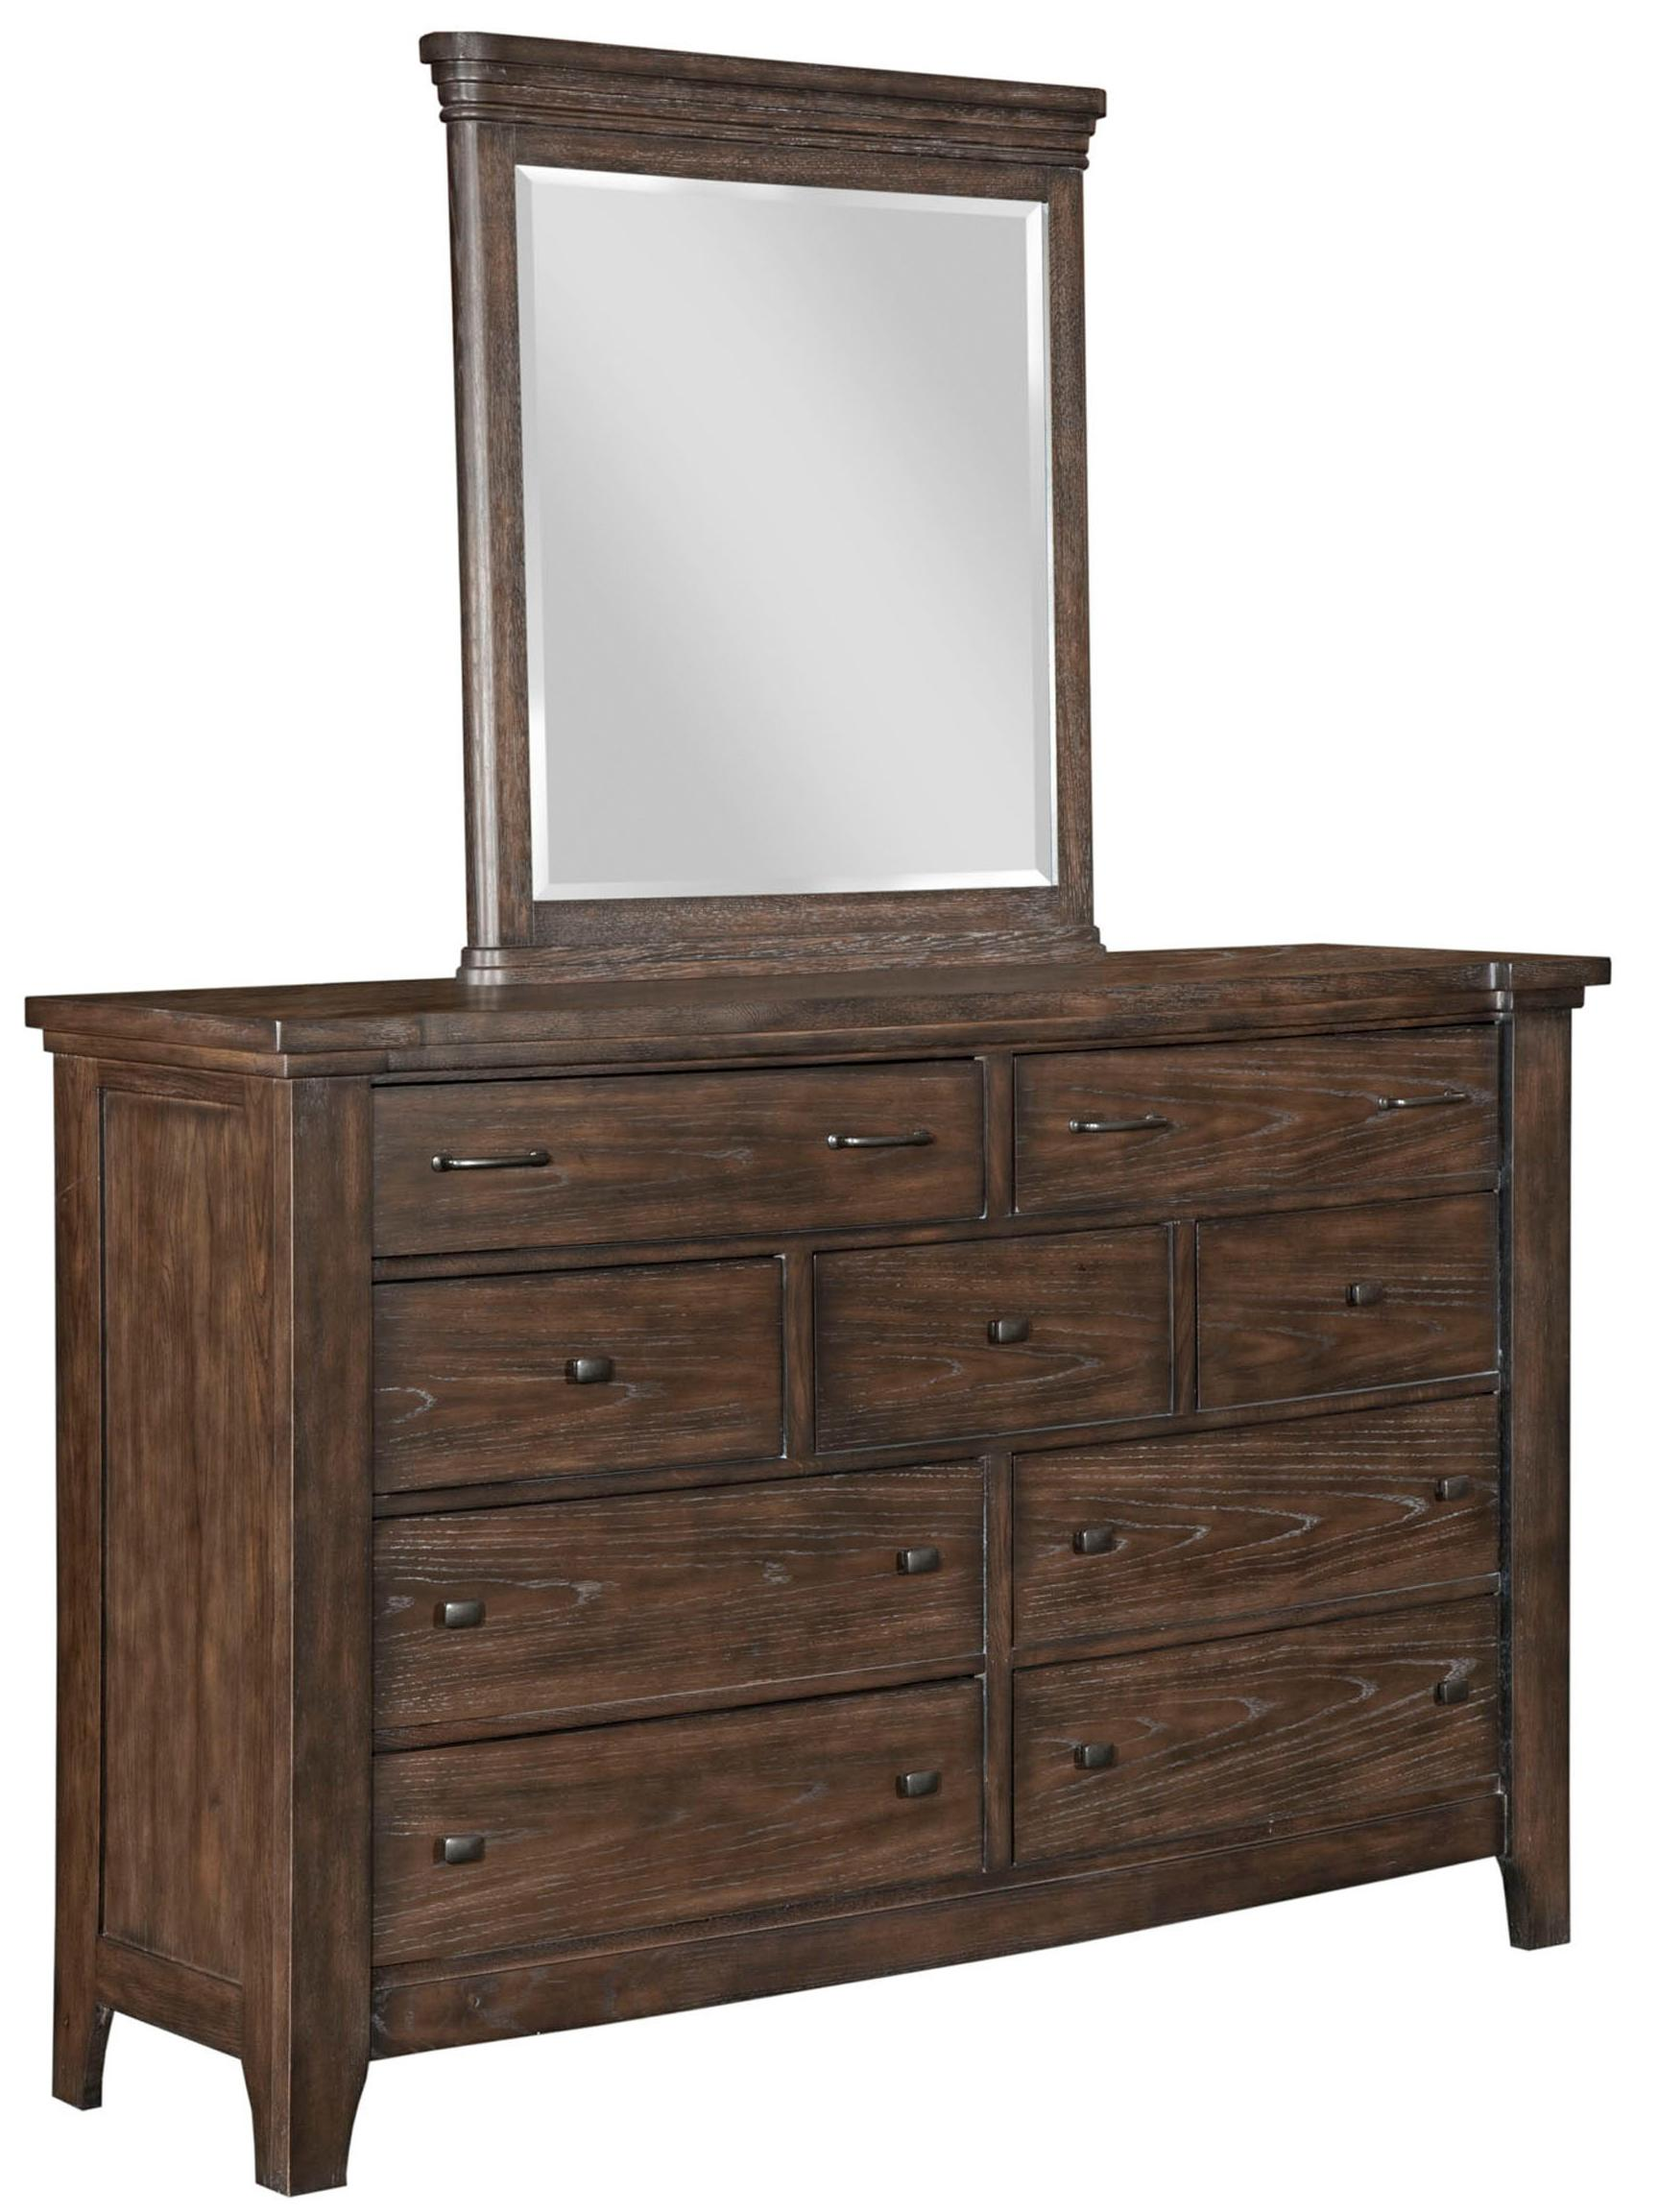 Rustic Dresser With Mirror By Broyhill Furniture For Home Furniture Ideas